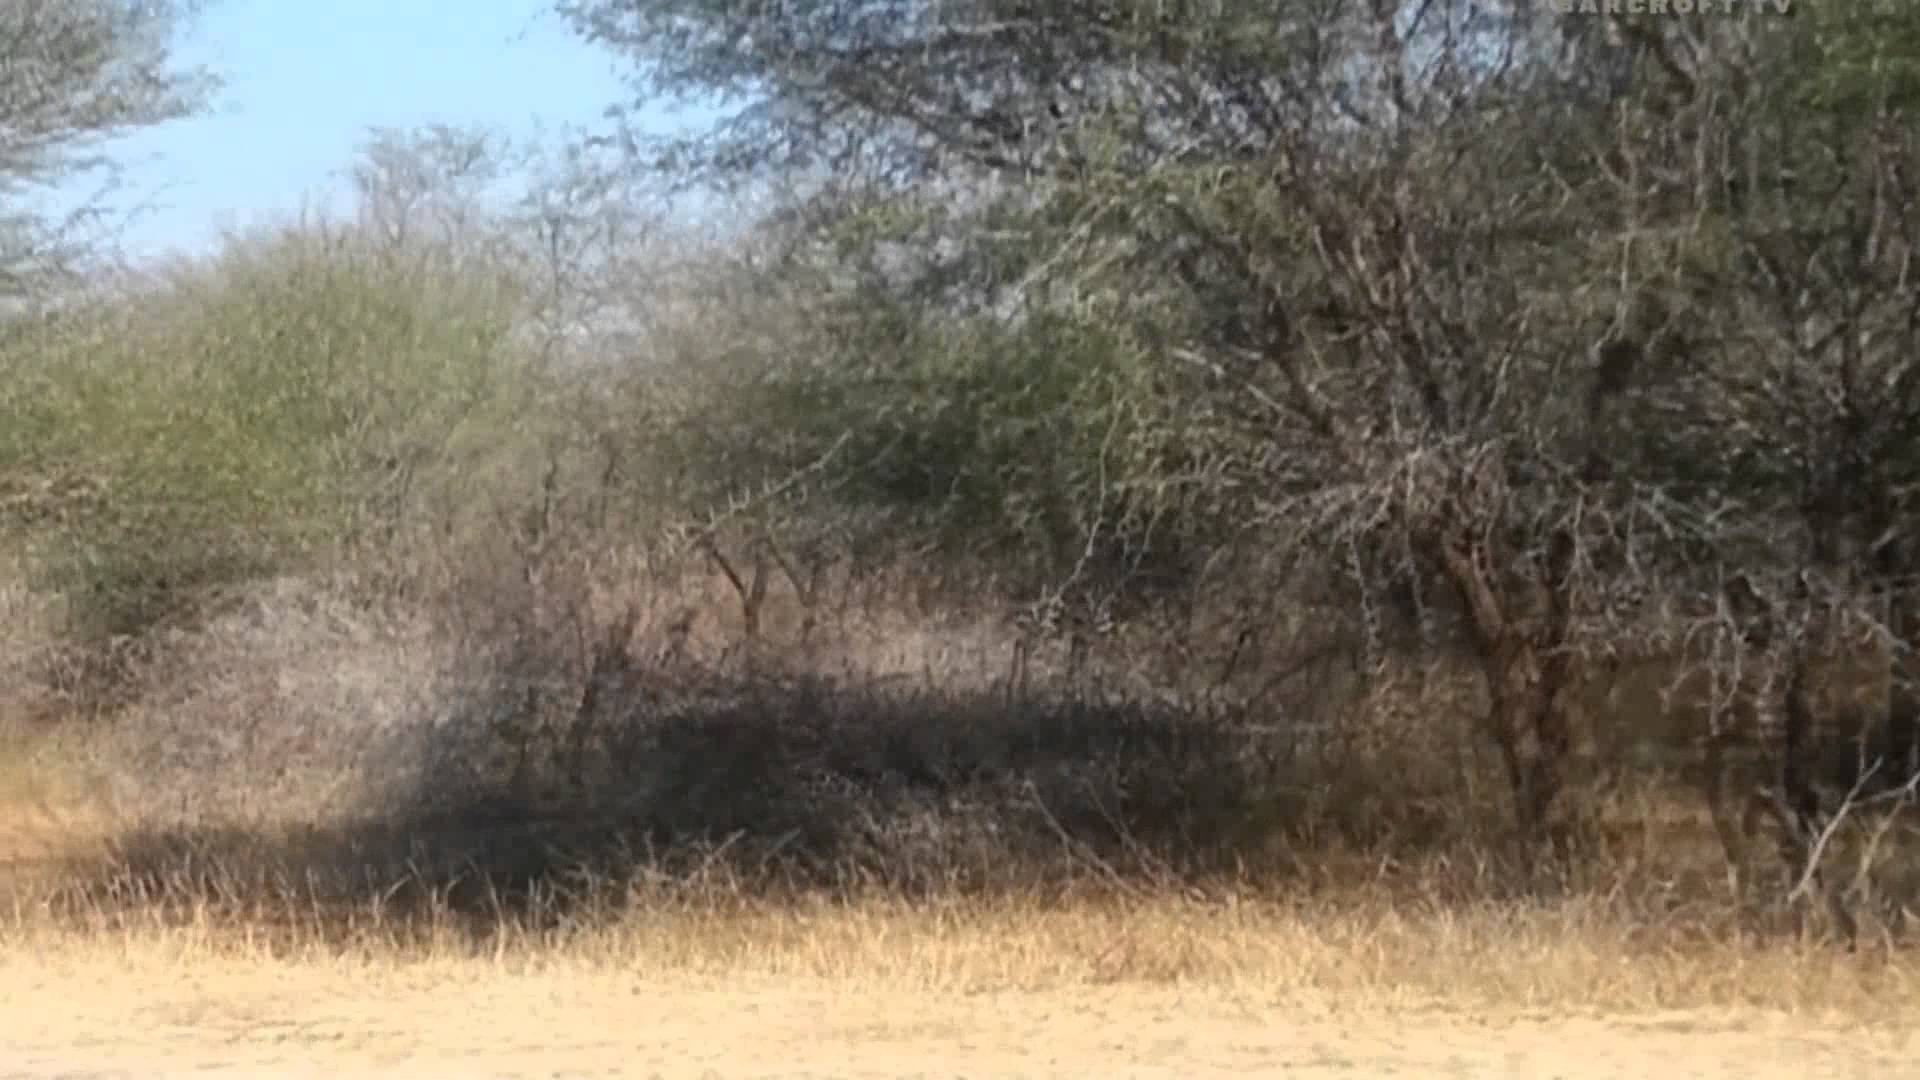 fleeing impala takes advantage of window of opportunity to outwit hungry cheetahs